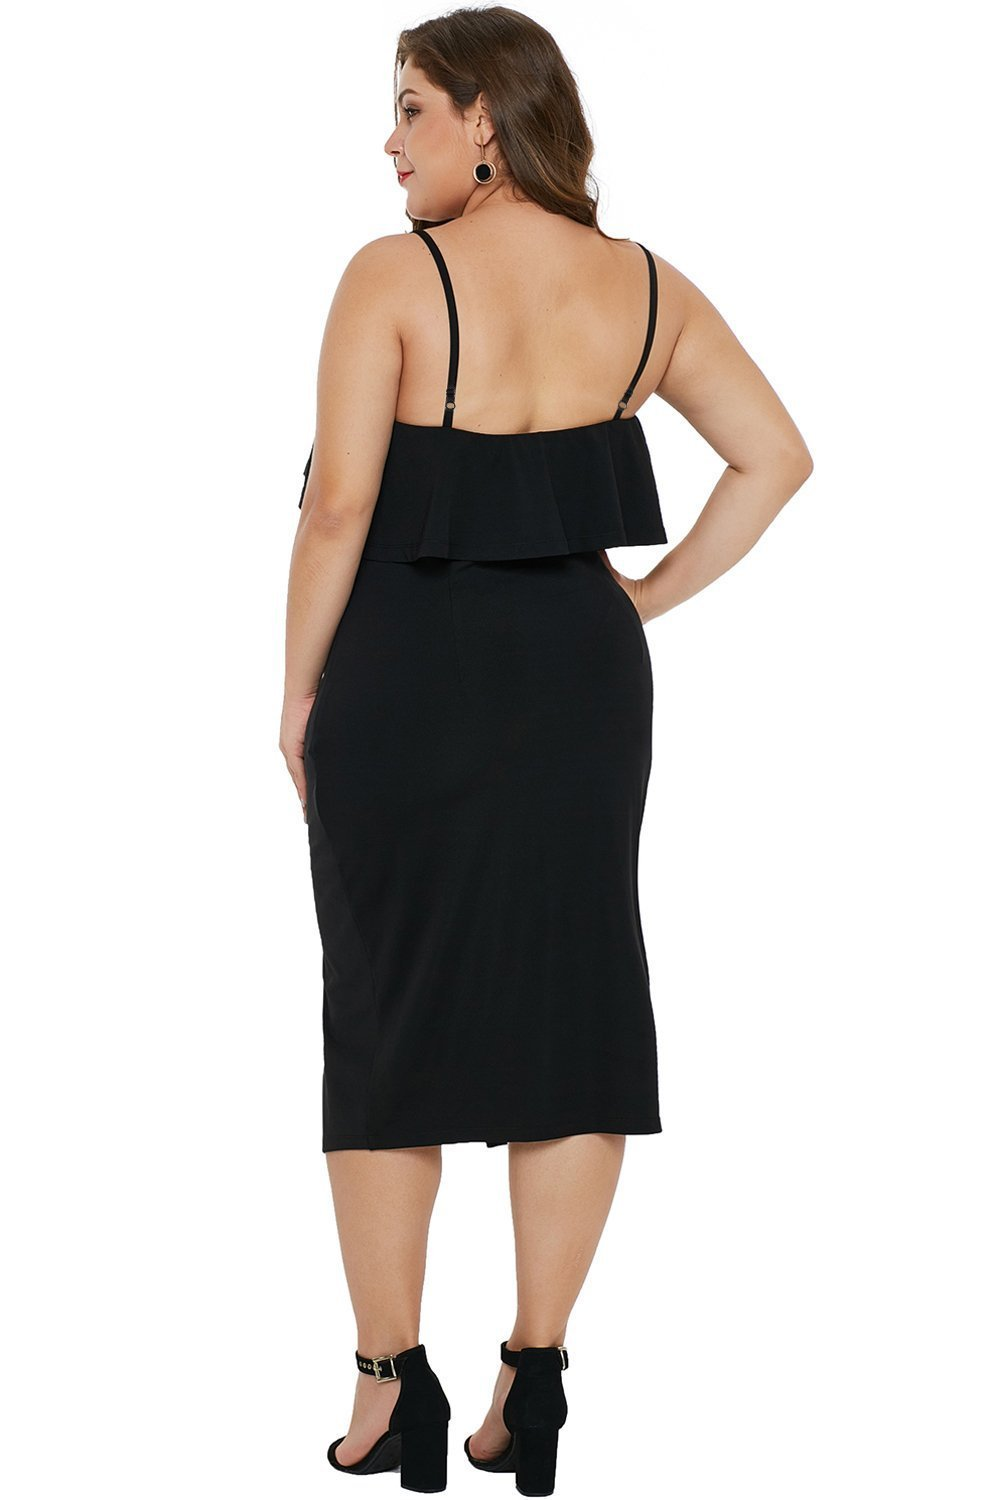 plus size Midi Dress XL / AUS 14 - 16 / Black Izzy Midi Dress - Black